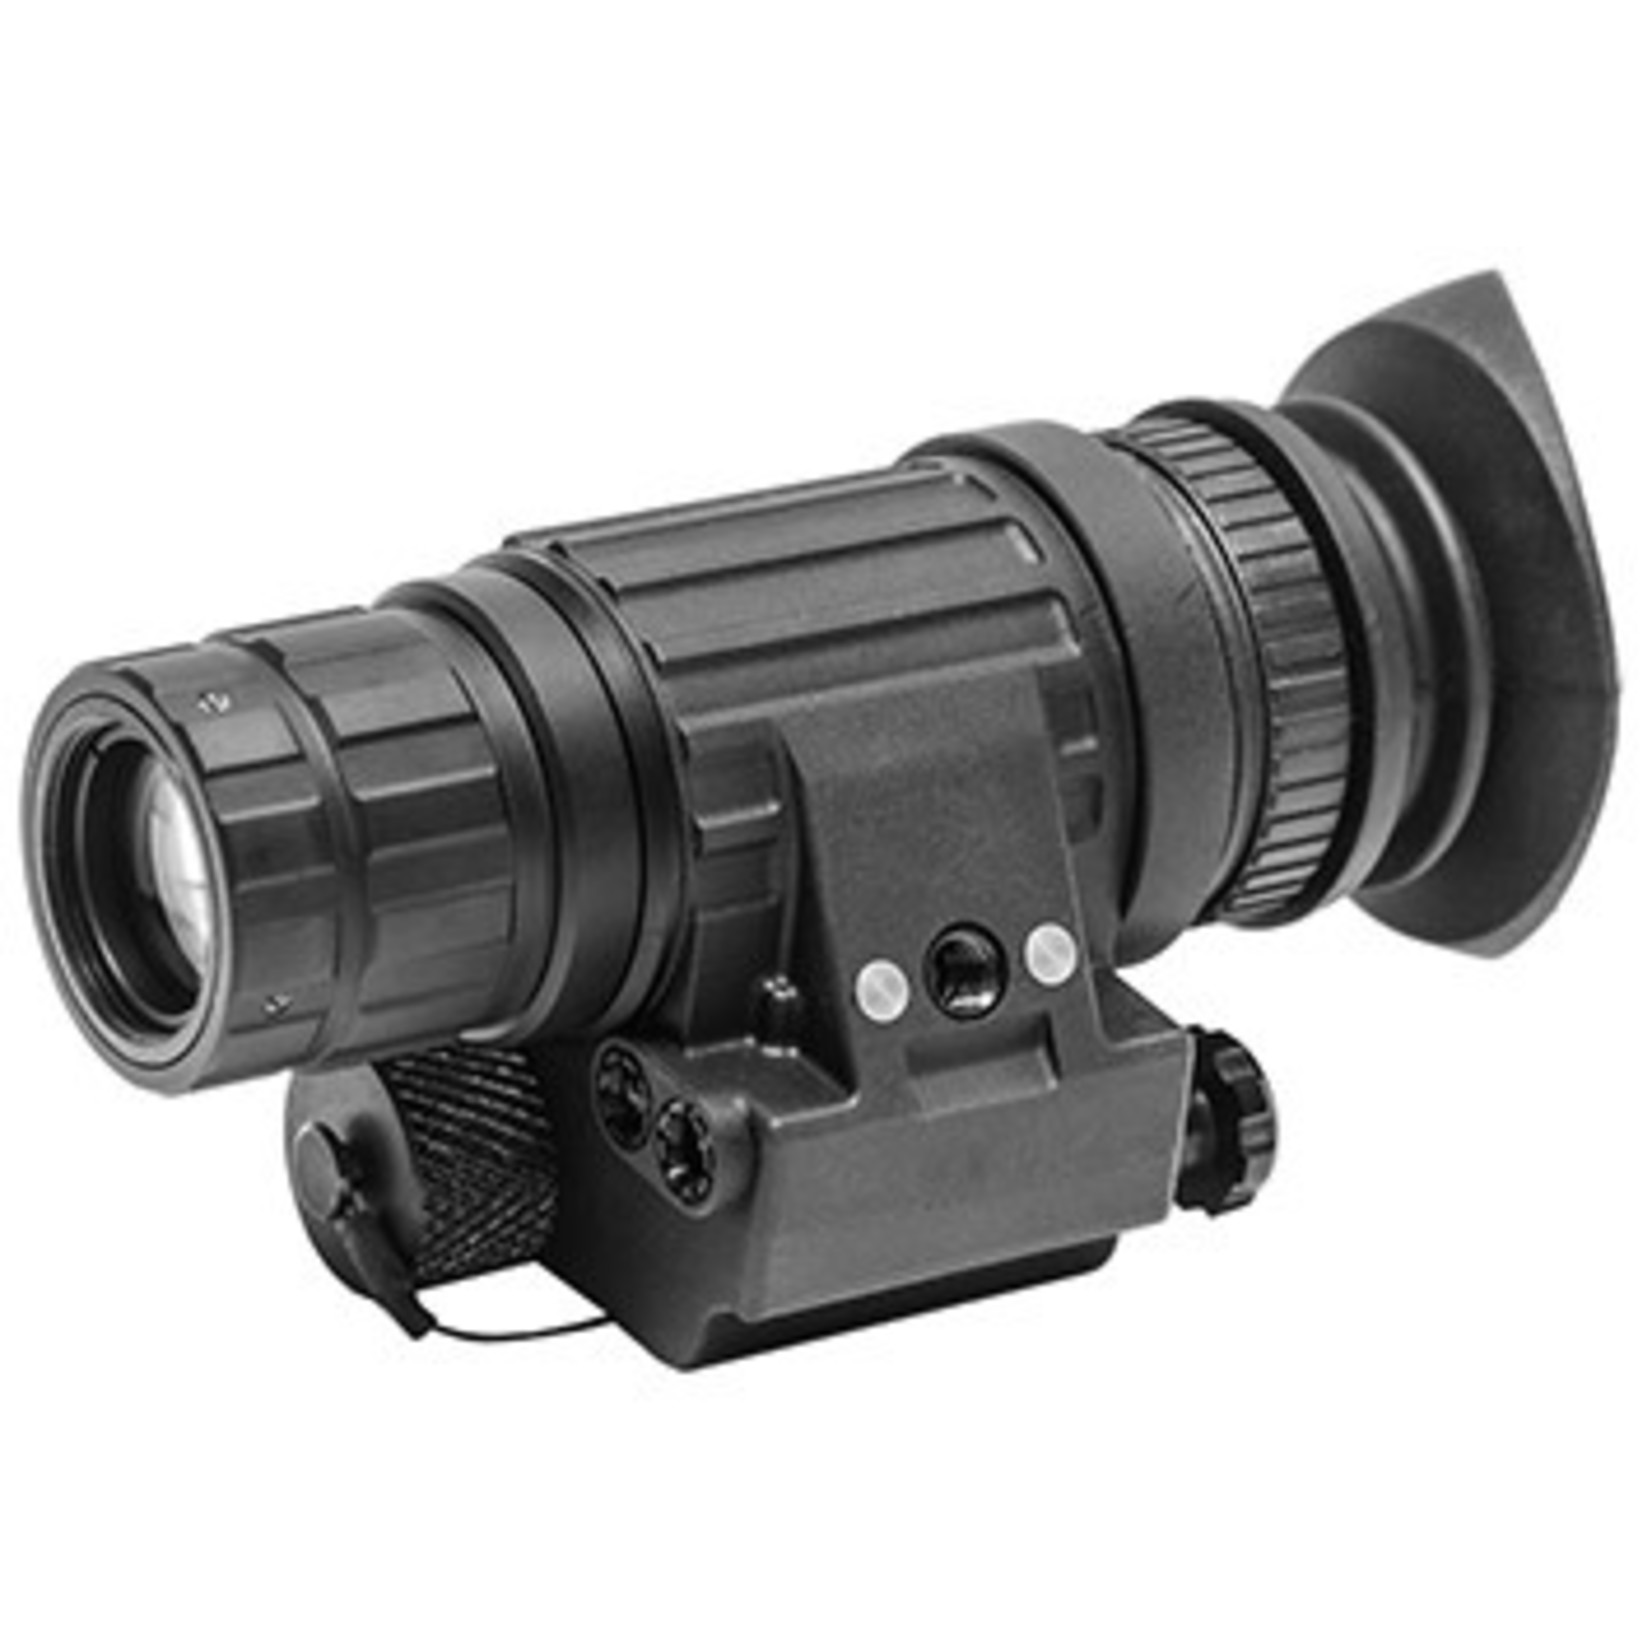 GSCI PBS-14 NIGHT VISION